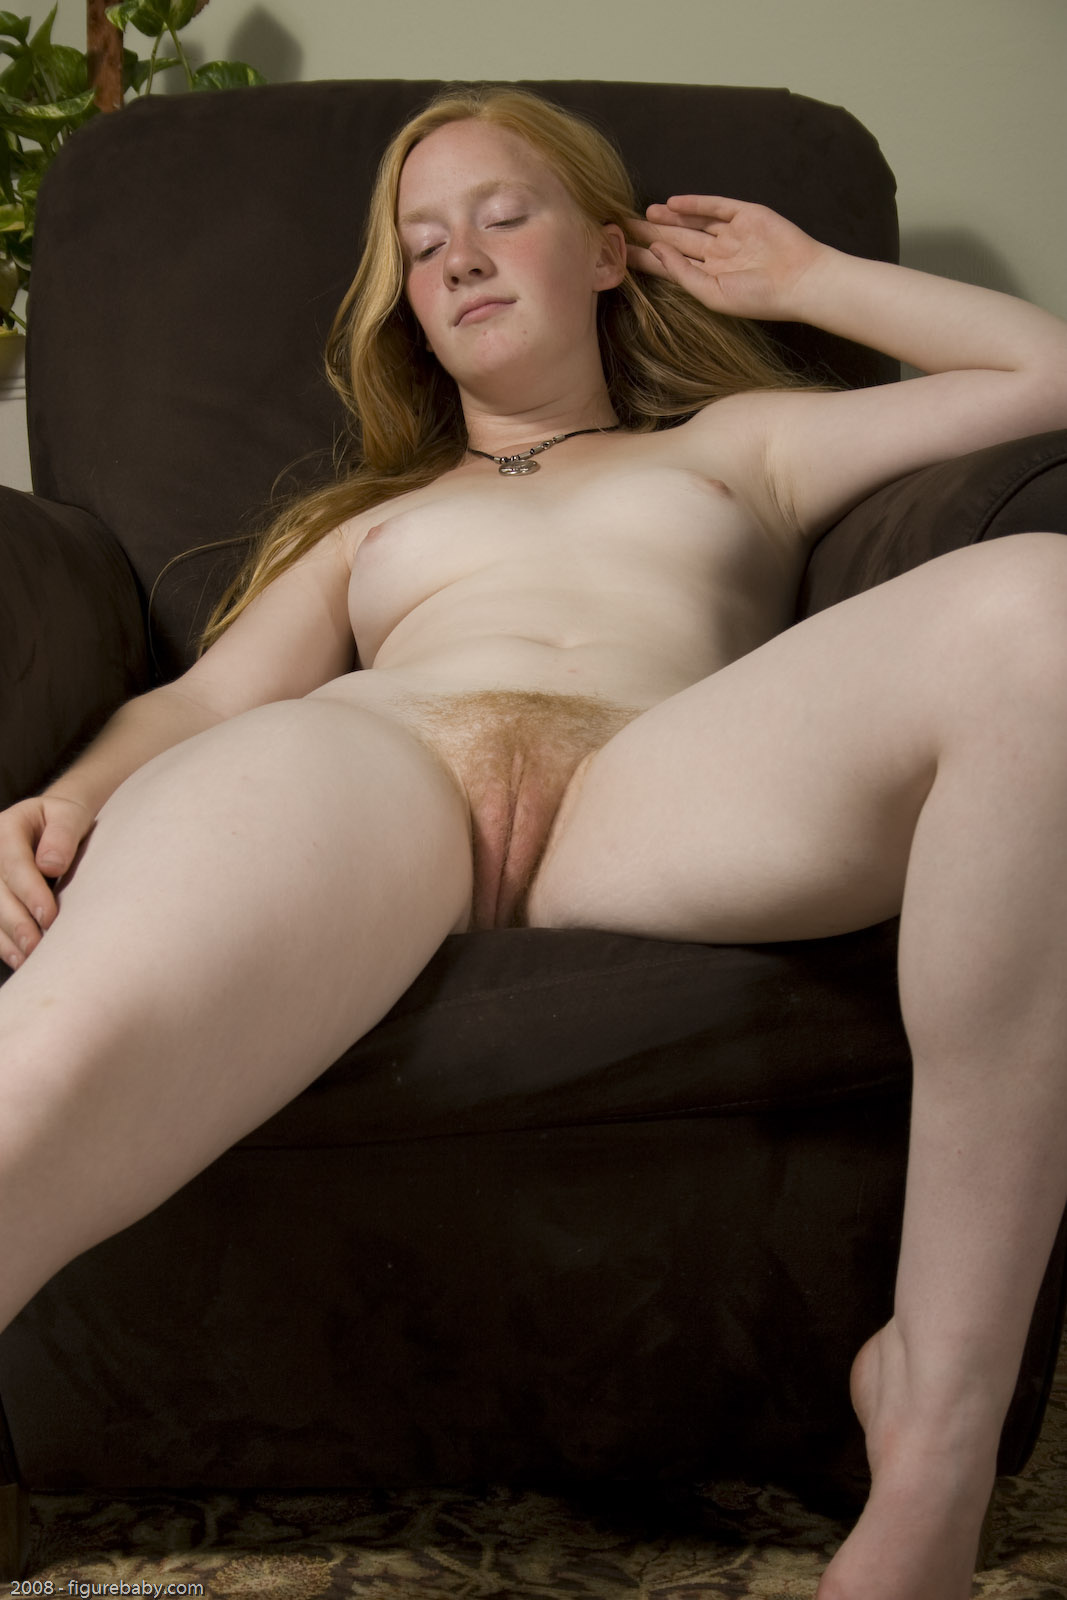 Hairy ginger pussy